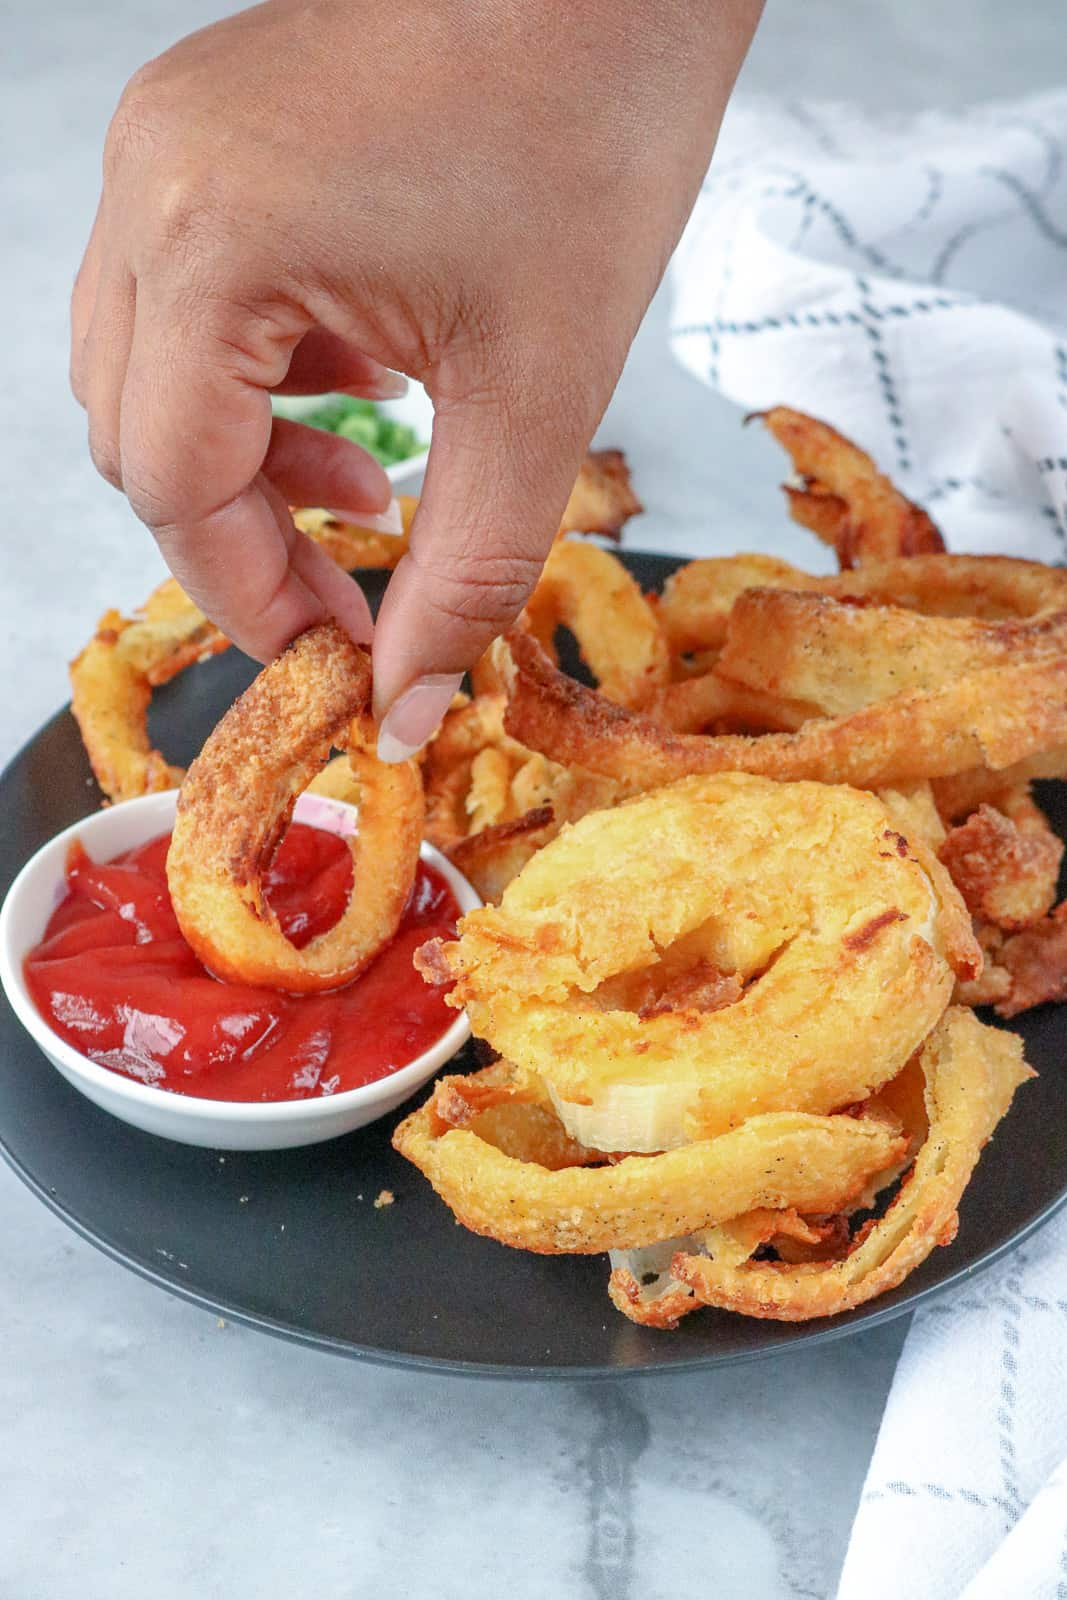 Hand dipping onion ring in ketchup